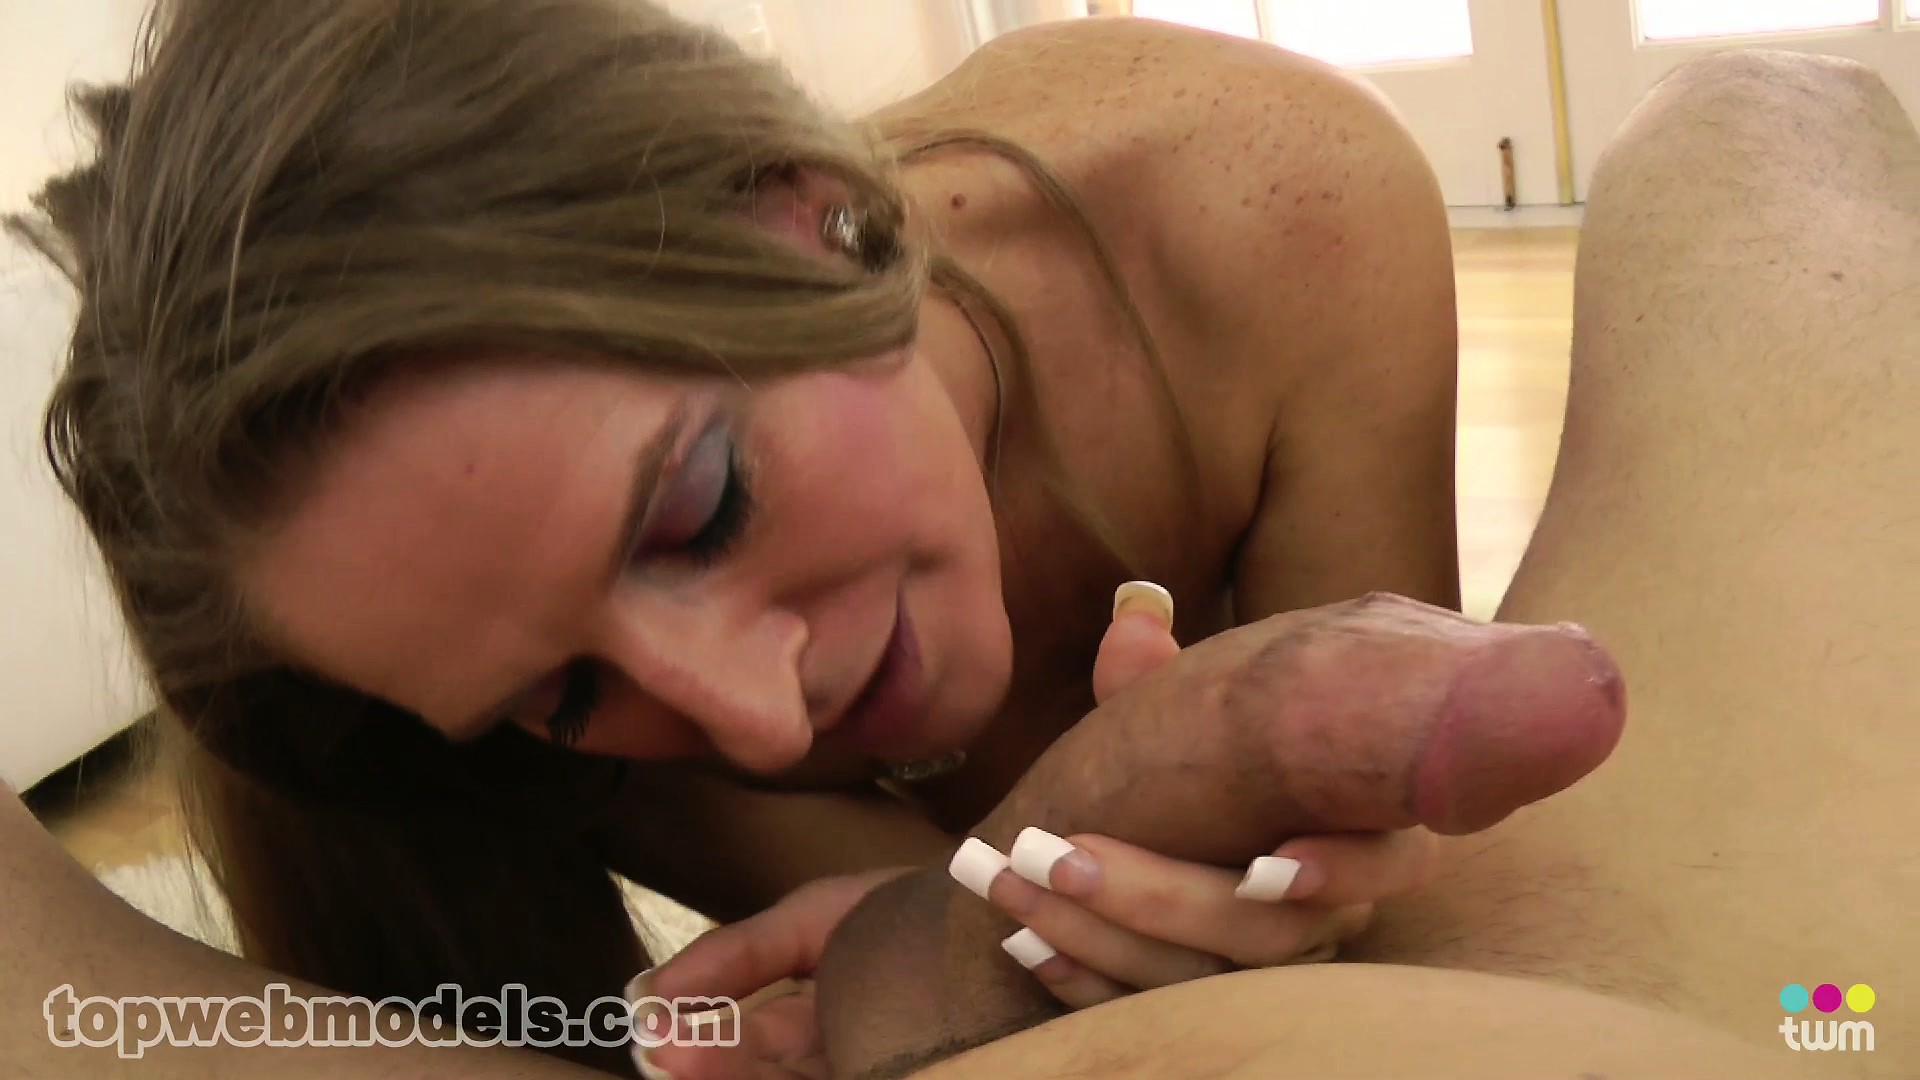 Porno Video of Sara James Makes That Shaft Burst With Pleasure In Her Mouth And She Swallows It All